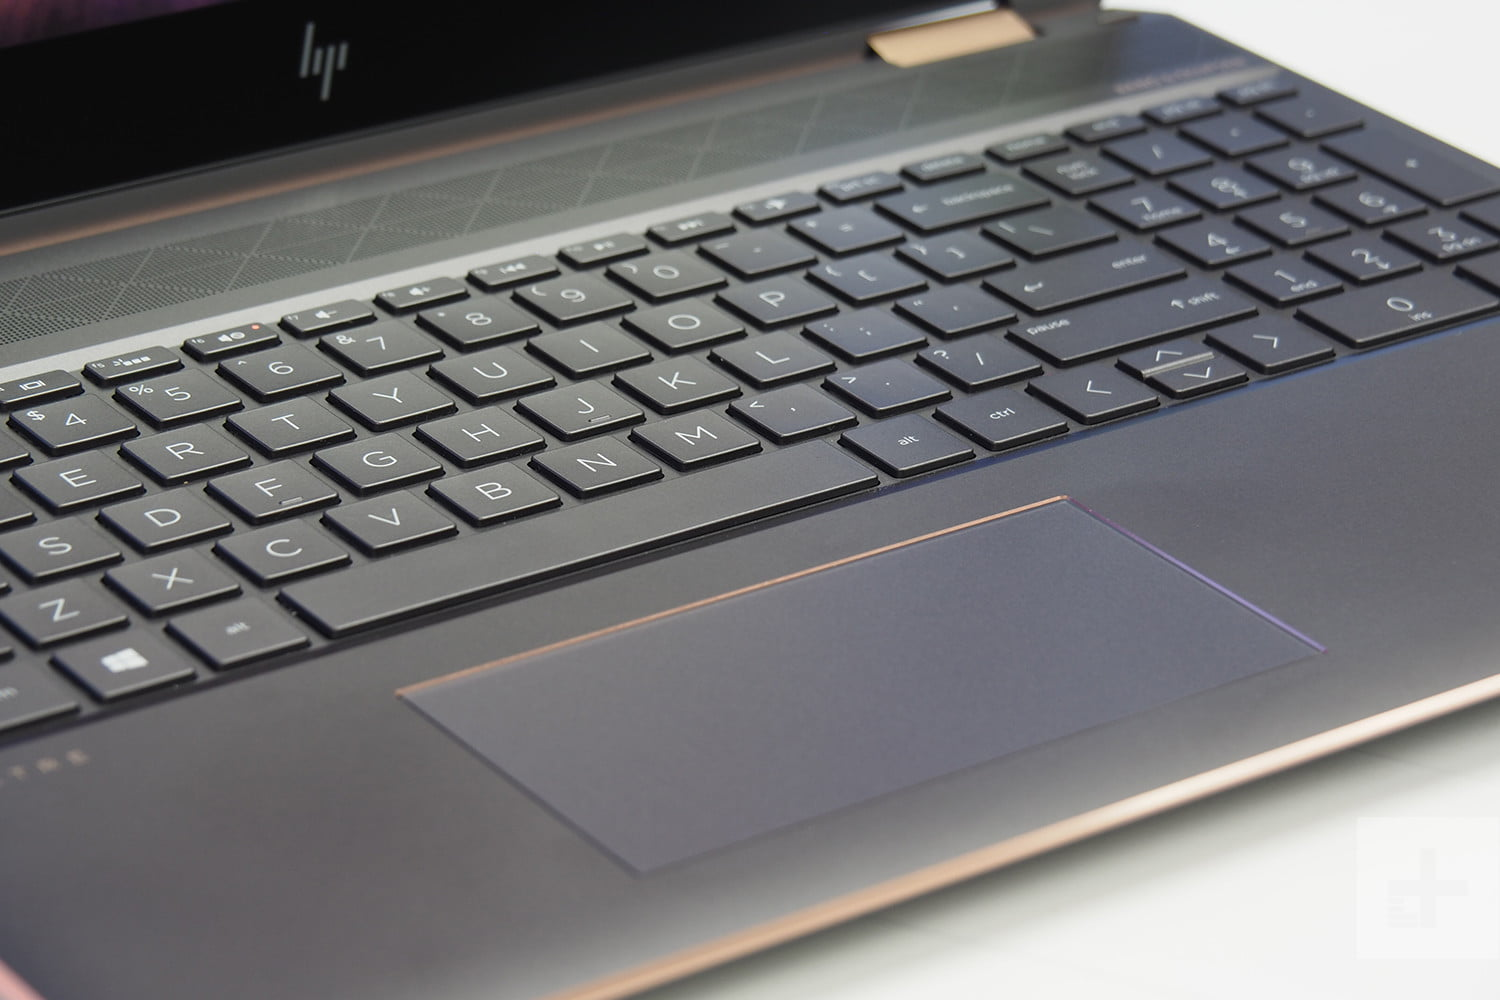 HP Spectre x360 15 showing keyboard and touchpad.